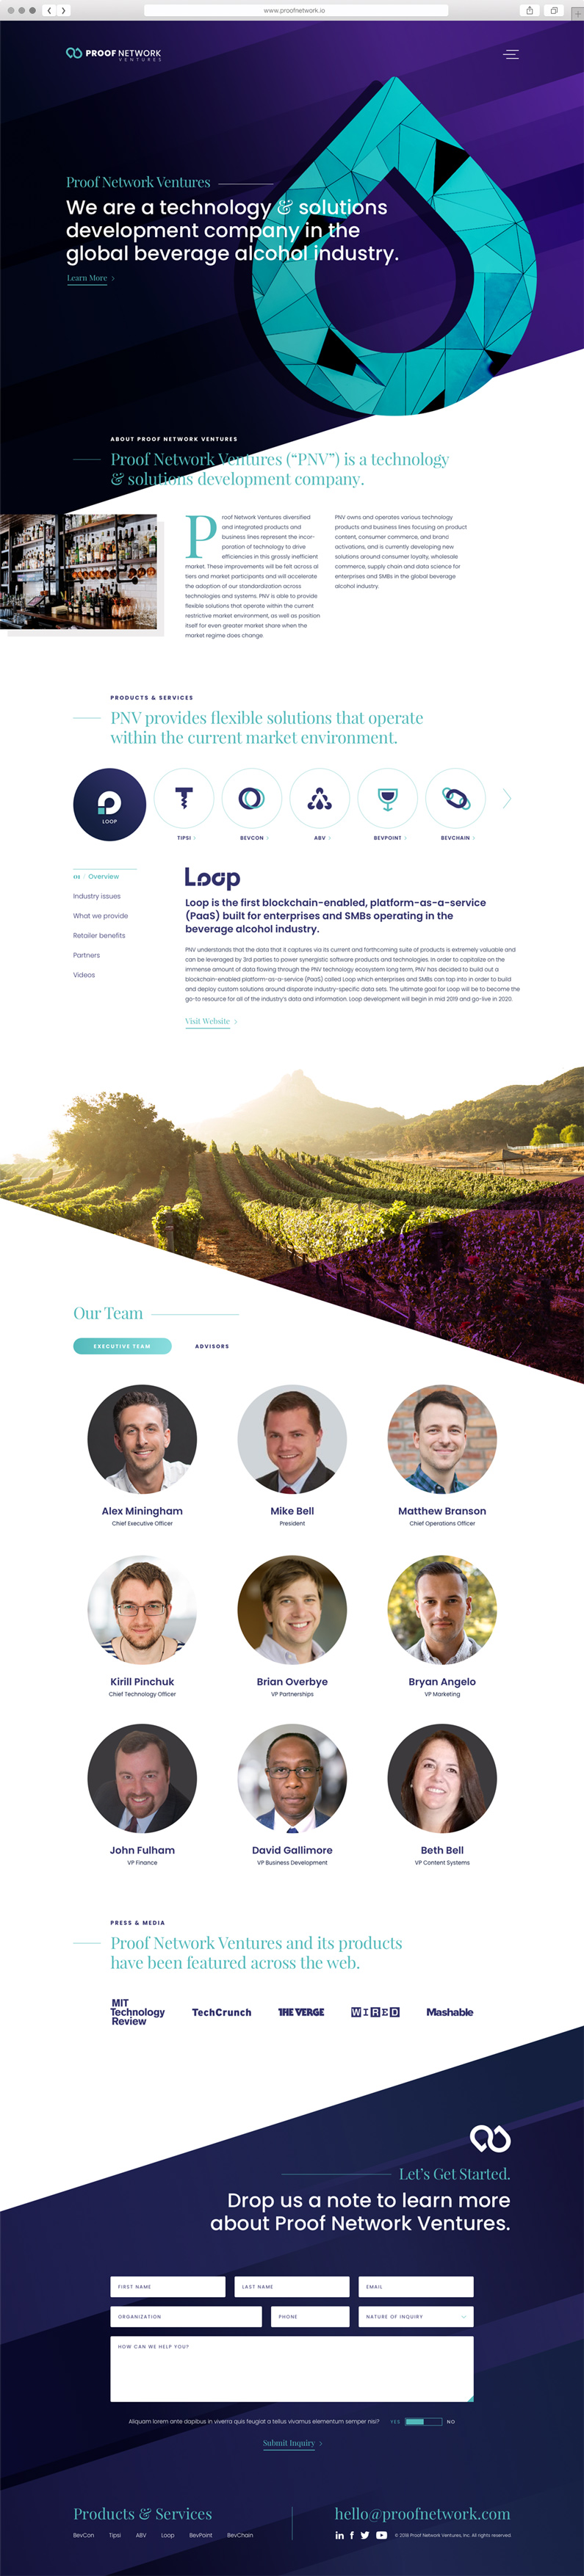 Web Design for Proof Network Ventures, a Philadelphia-area technology company